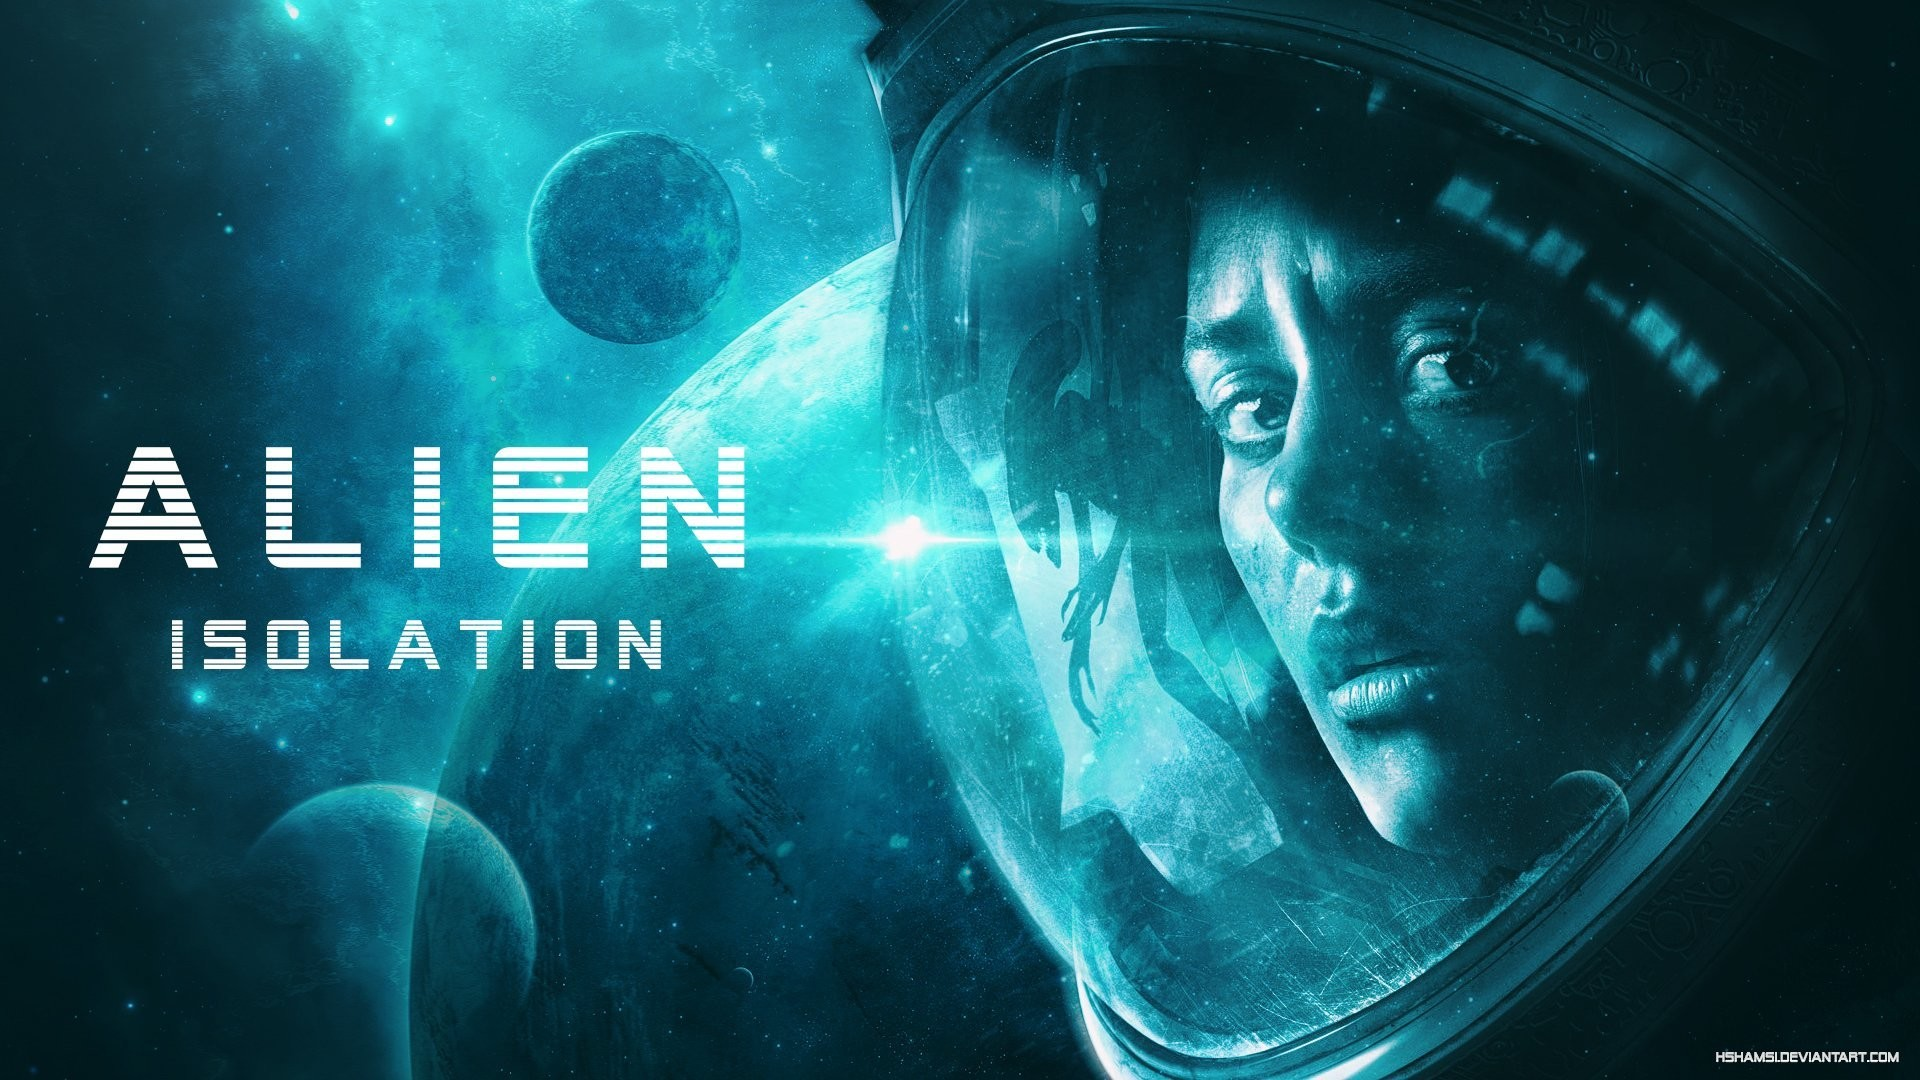 alien isolation game images by hshamsi space suit girl